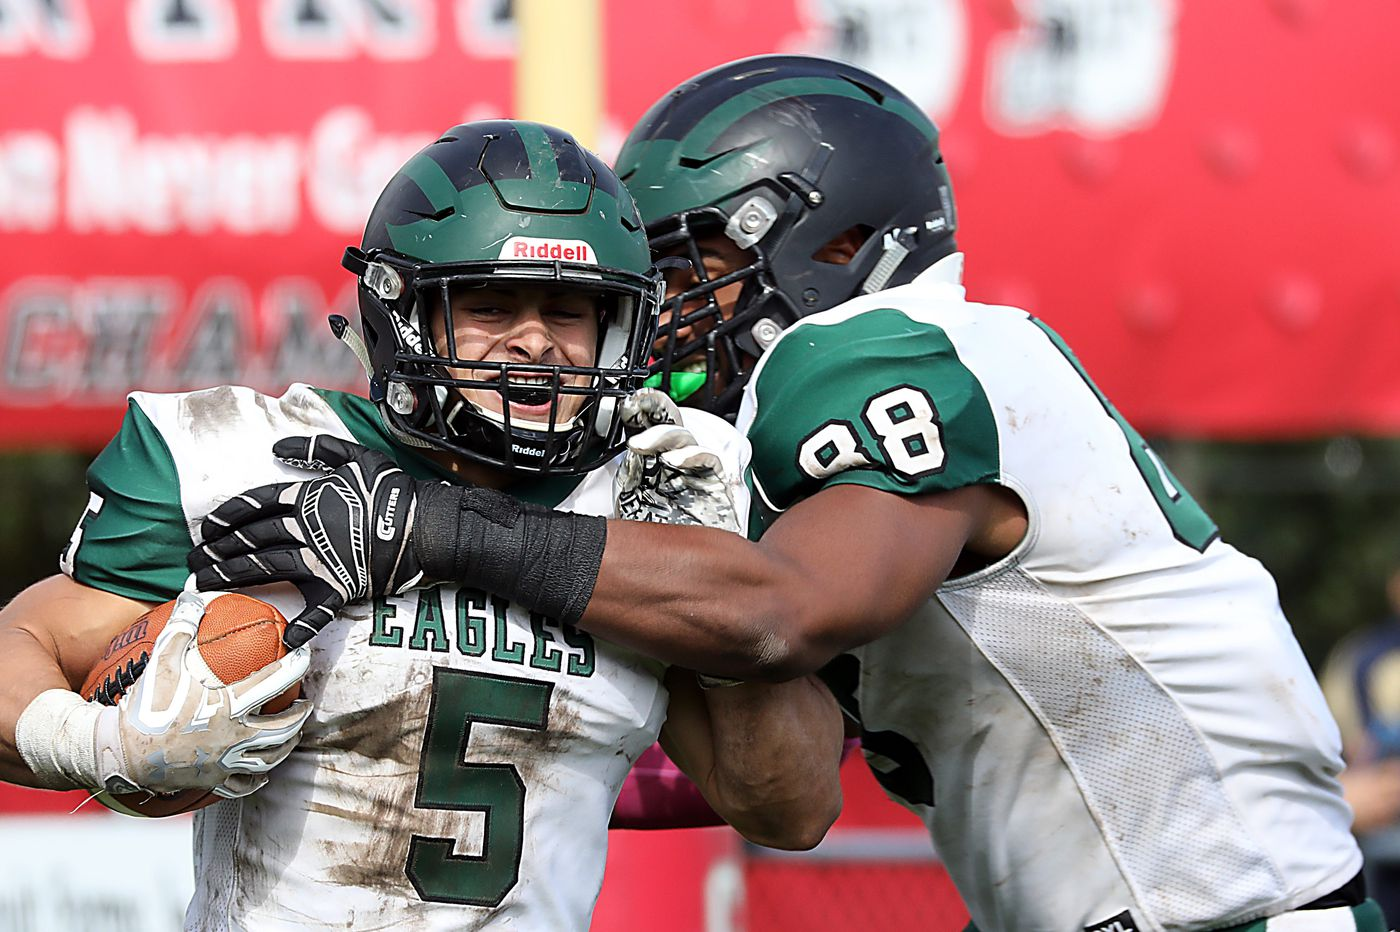 Tyshawn Bookman and West Deptford shock St. Joseph, 51-0